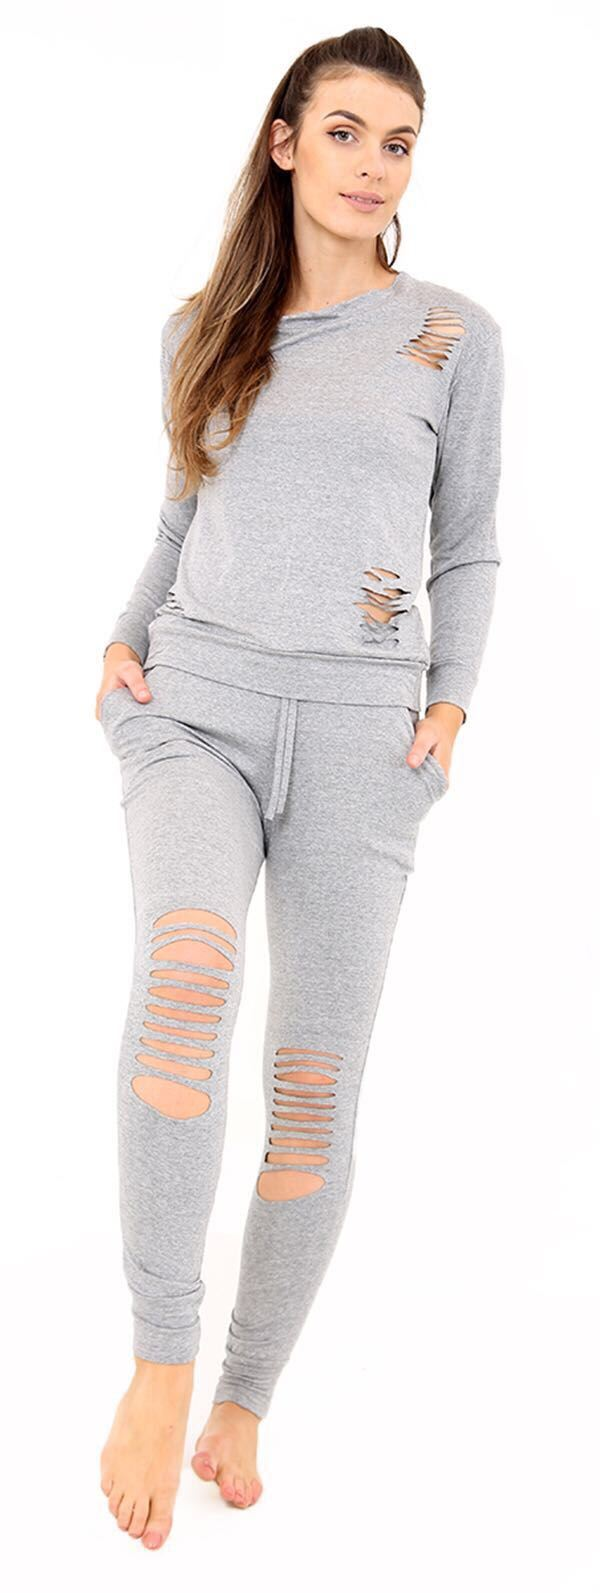 Women-Ripped-Lounge-wear-Women-Distressed-Tracksuit-Outfit-